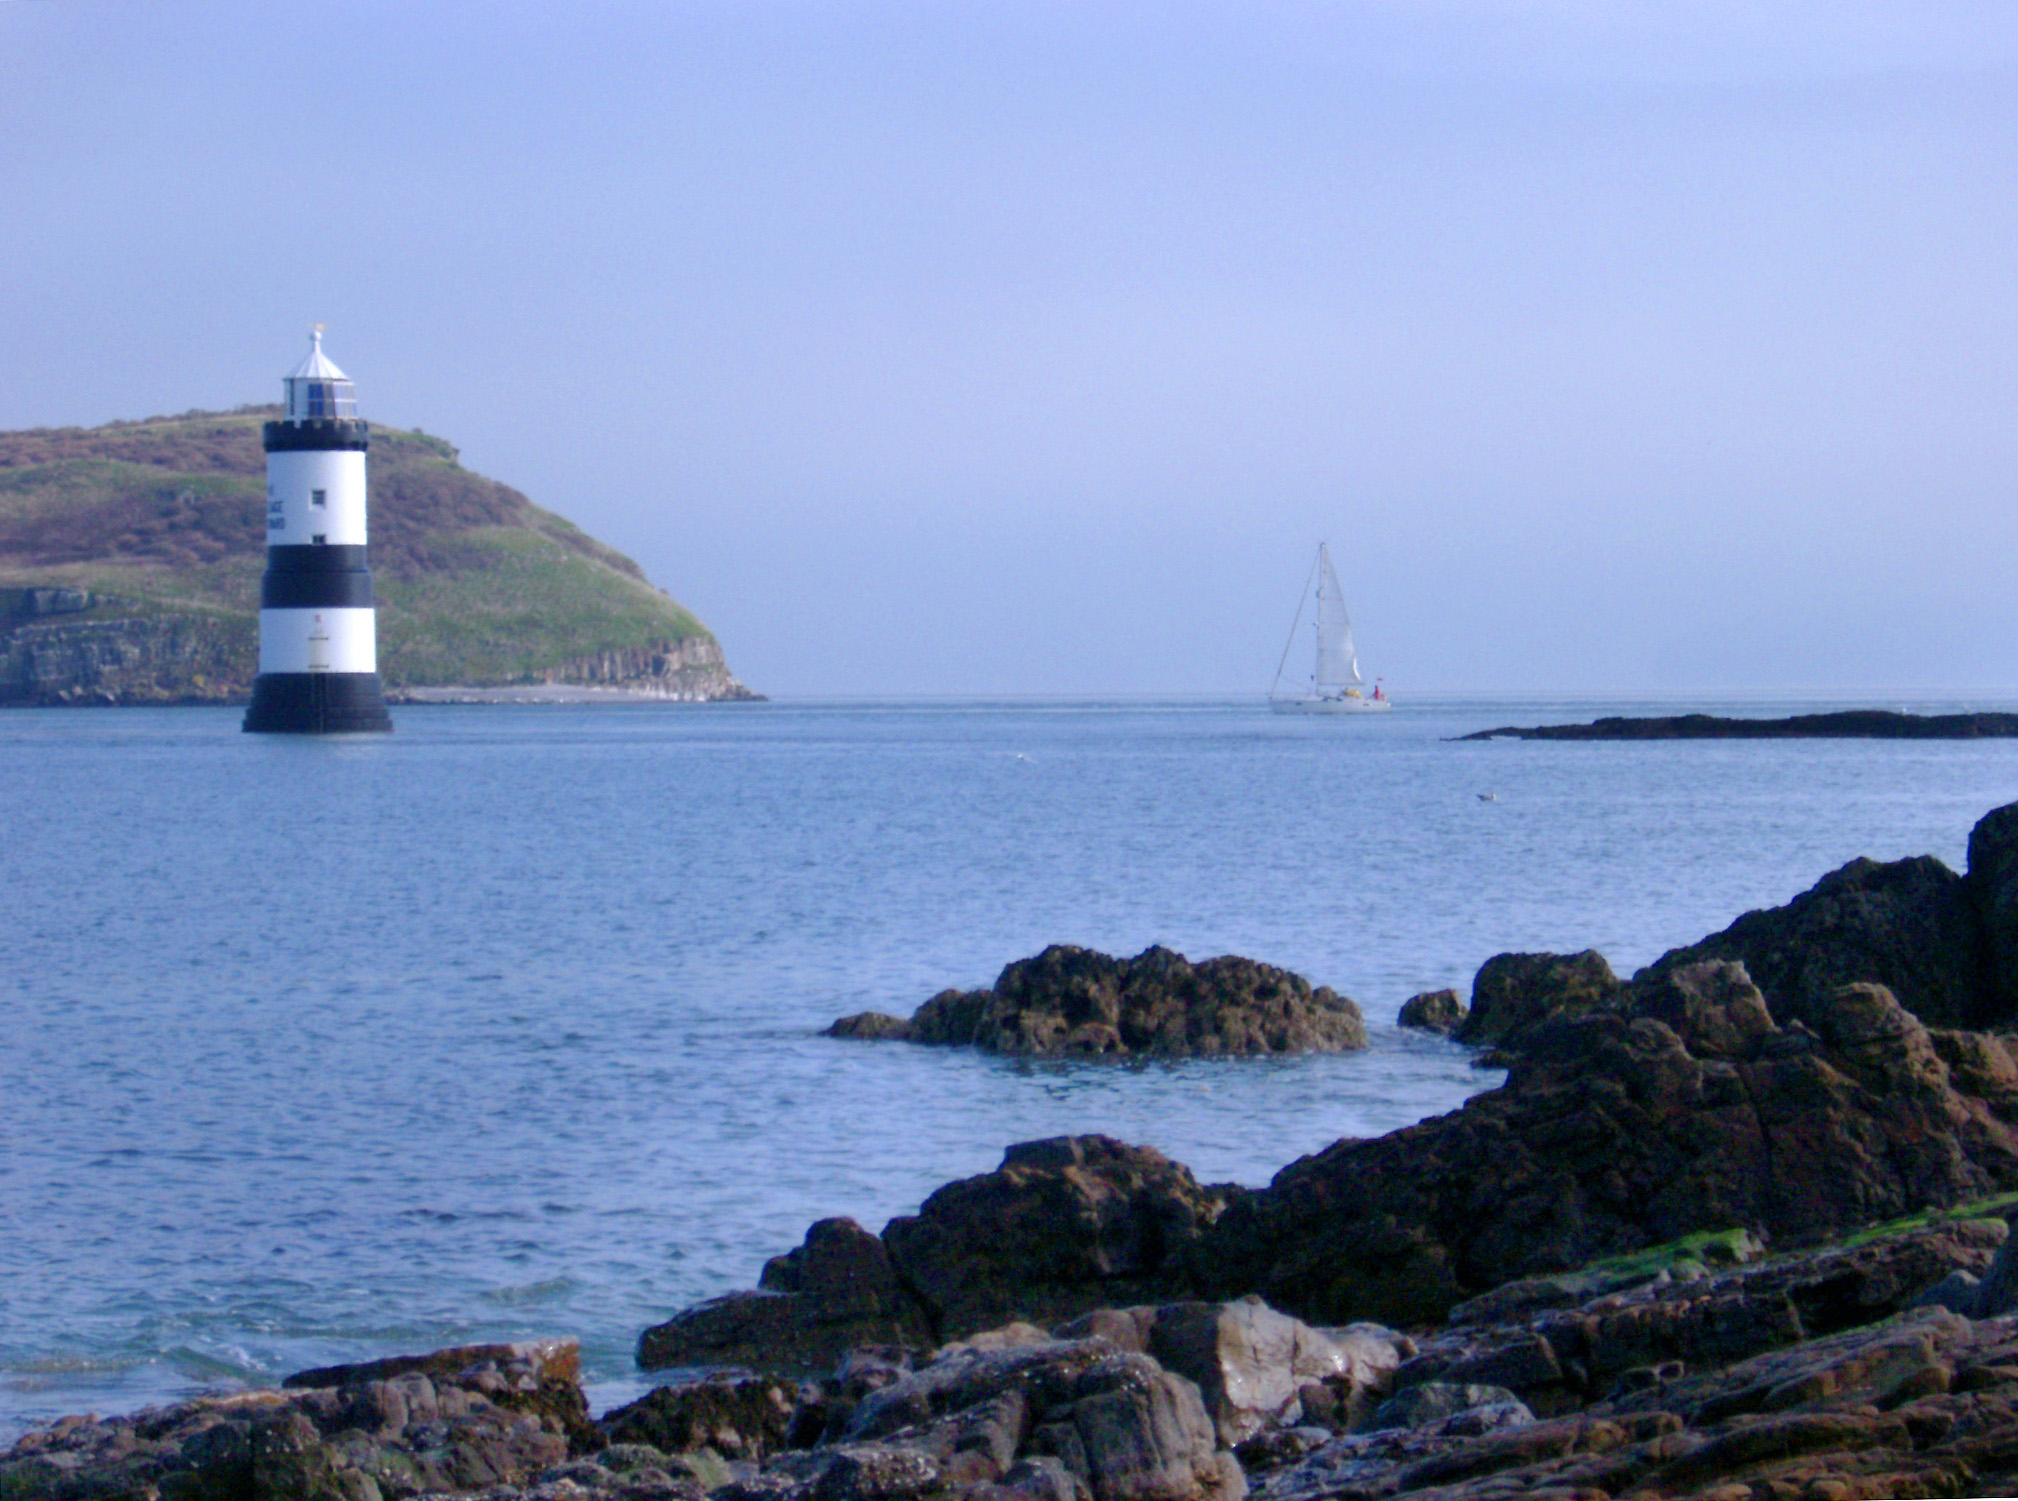 Lighthouse off a headland on the coast of Anglesey, Wales to warn shipping of a hazard